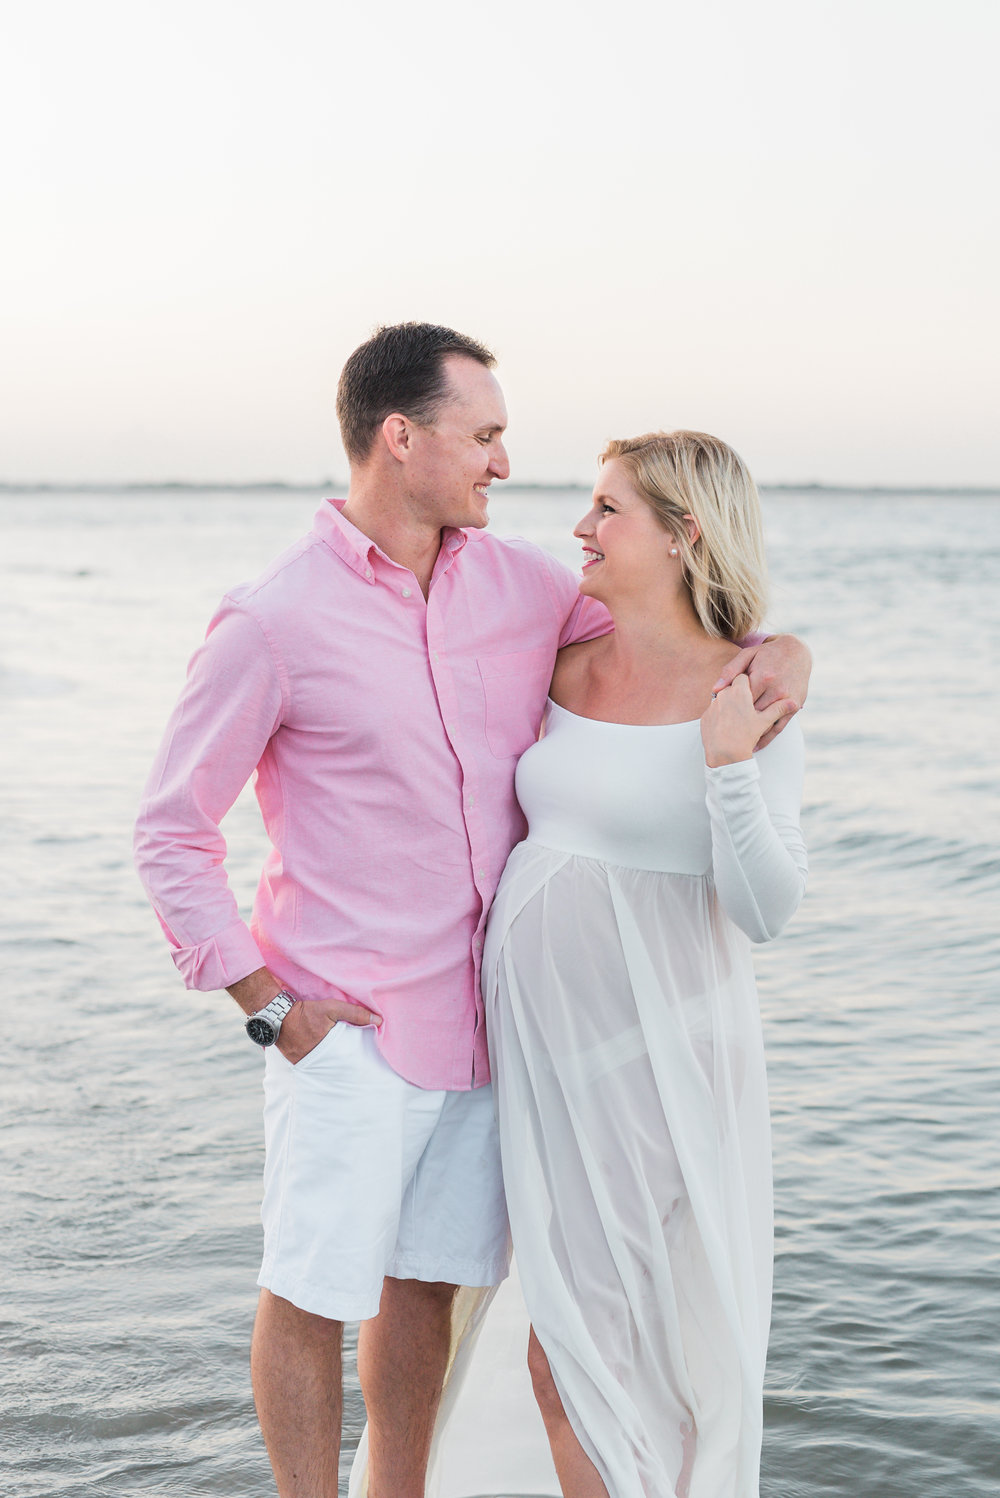 Folly-Beach-Maternity-Photographer-Following-Seas-Photography-5329 copy.jpg